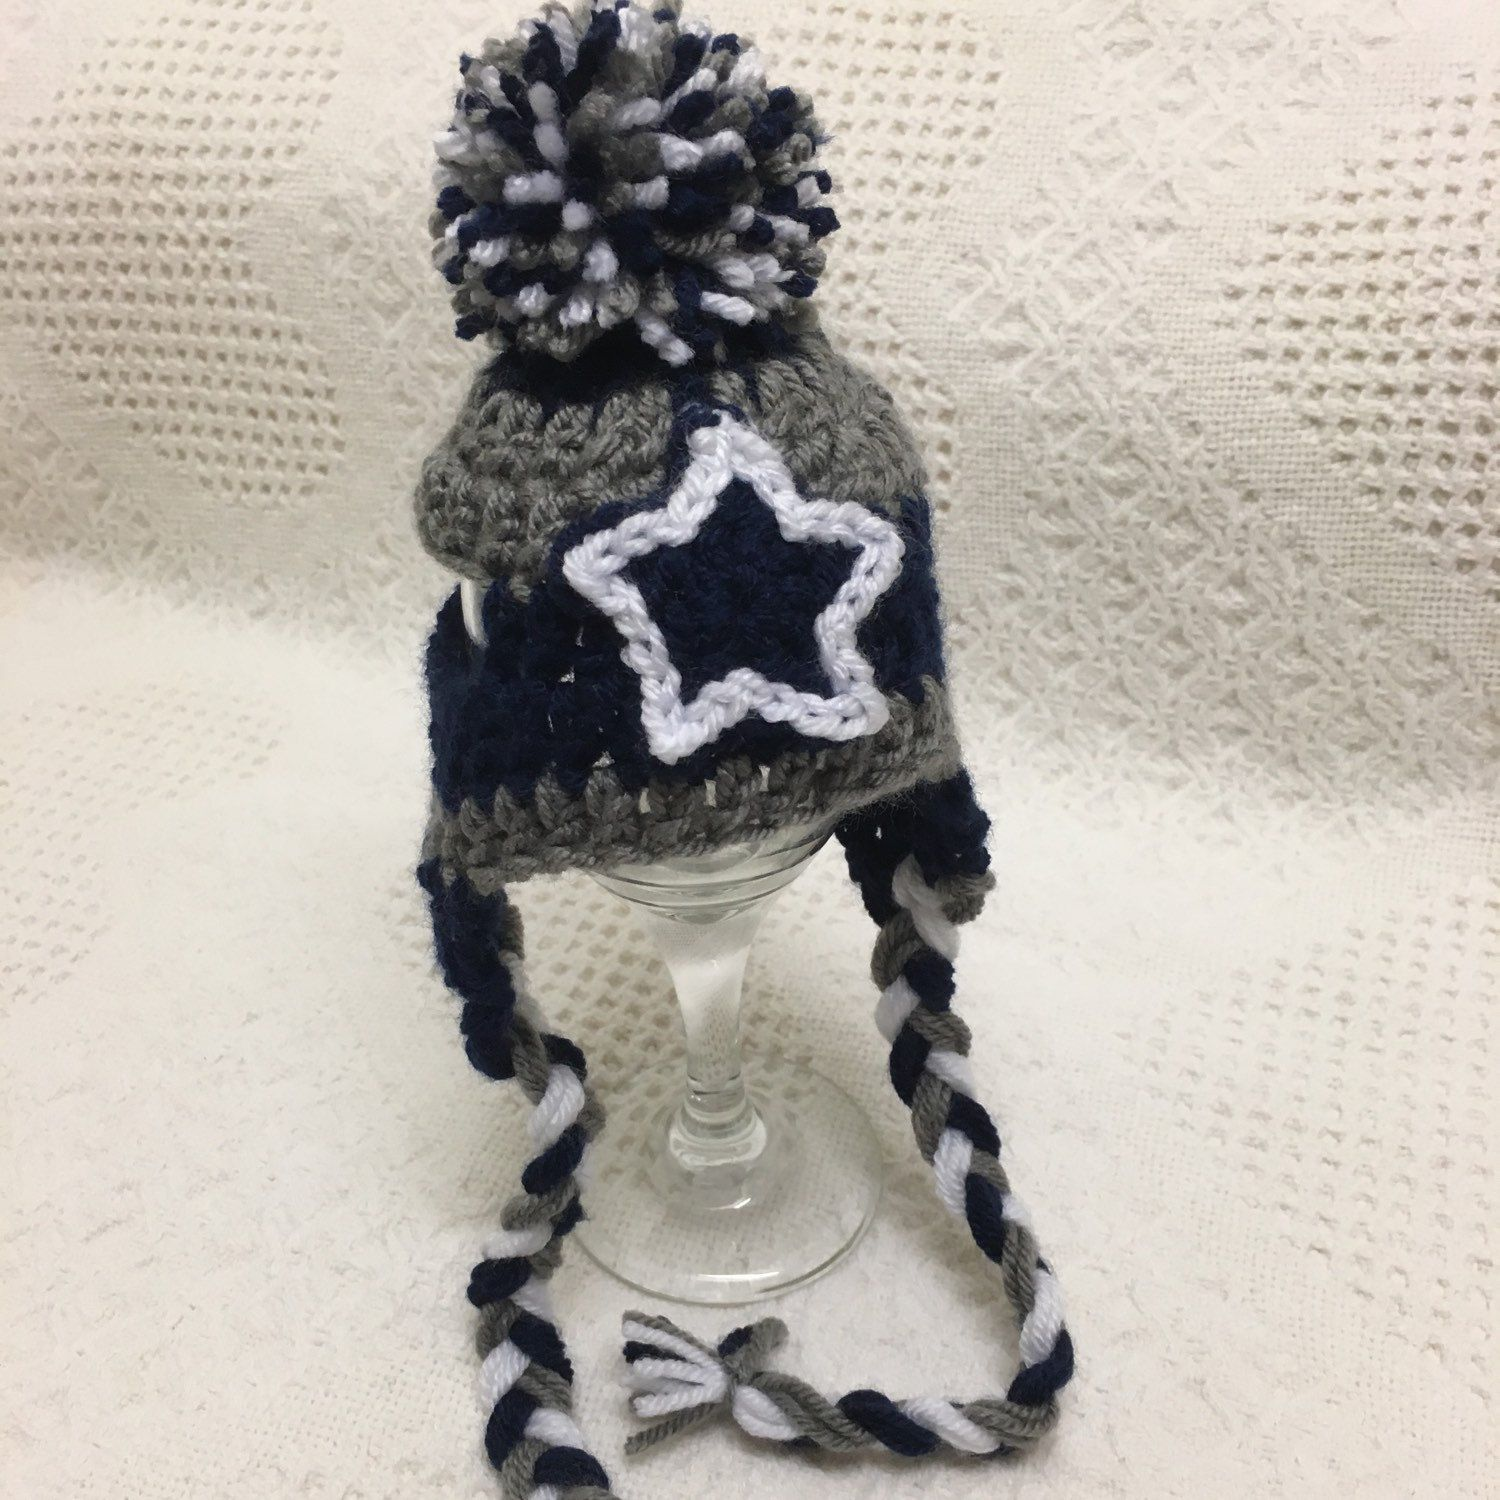 Dallas Cowboy inspired dog toboggan. Cute and warm. Perfect for game day. Football fan.